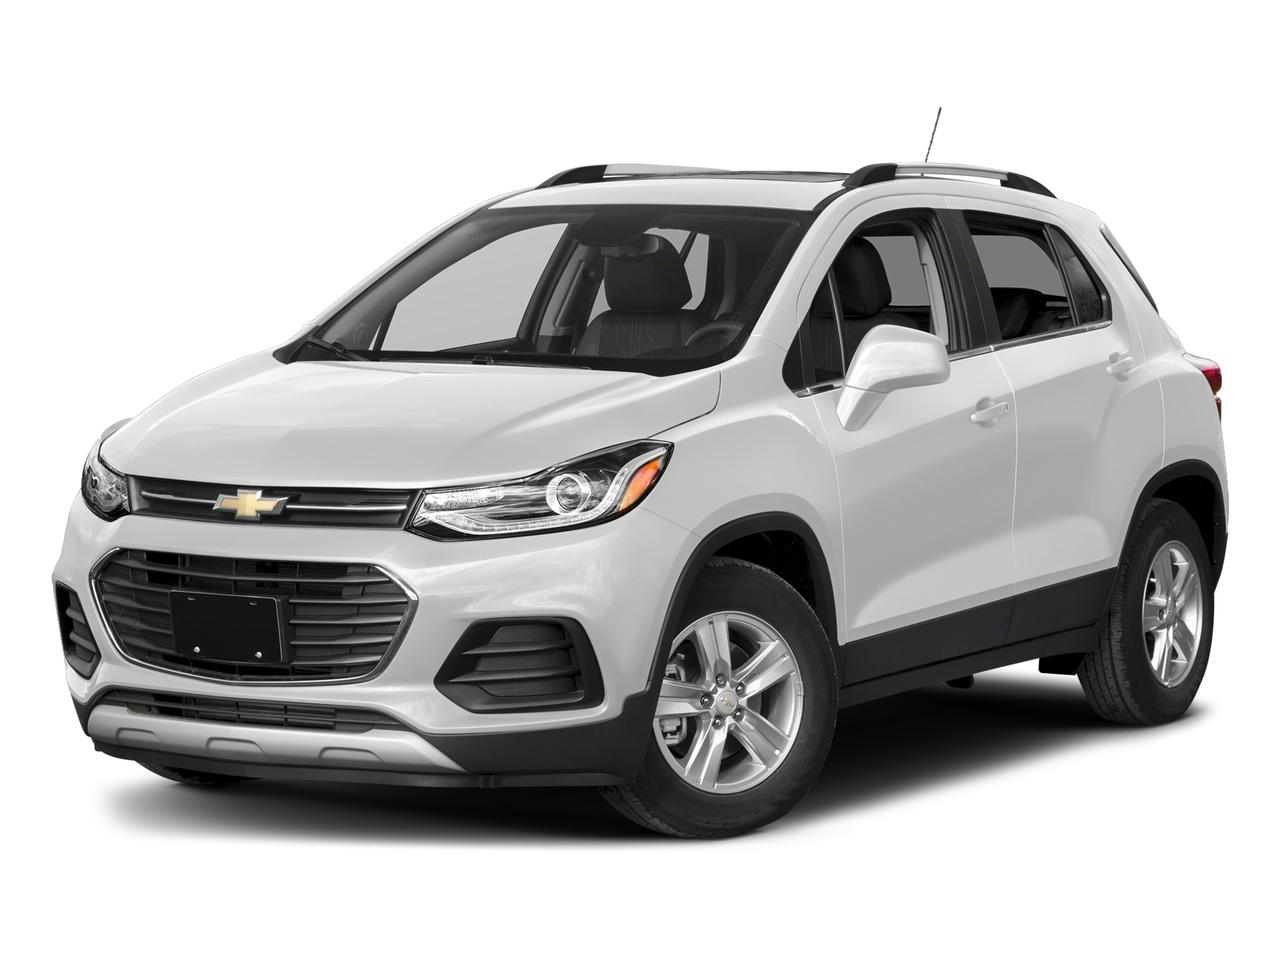 2018 Chevrolet Trax Vehicle Photo in Clifton, NJ 07013